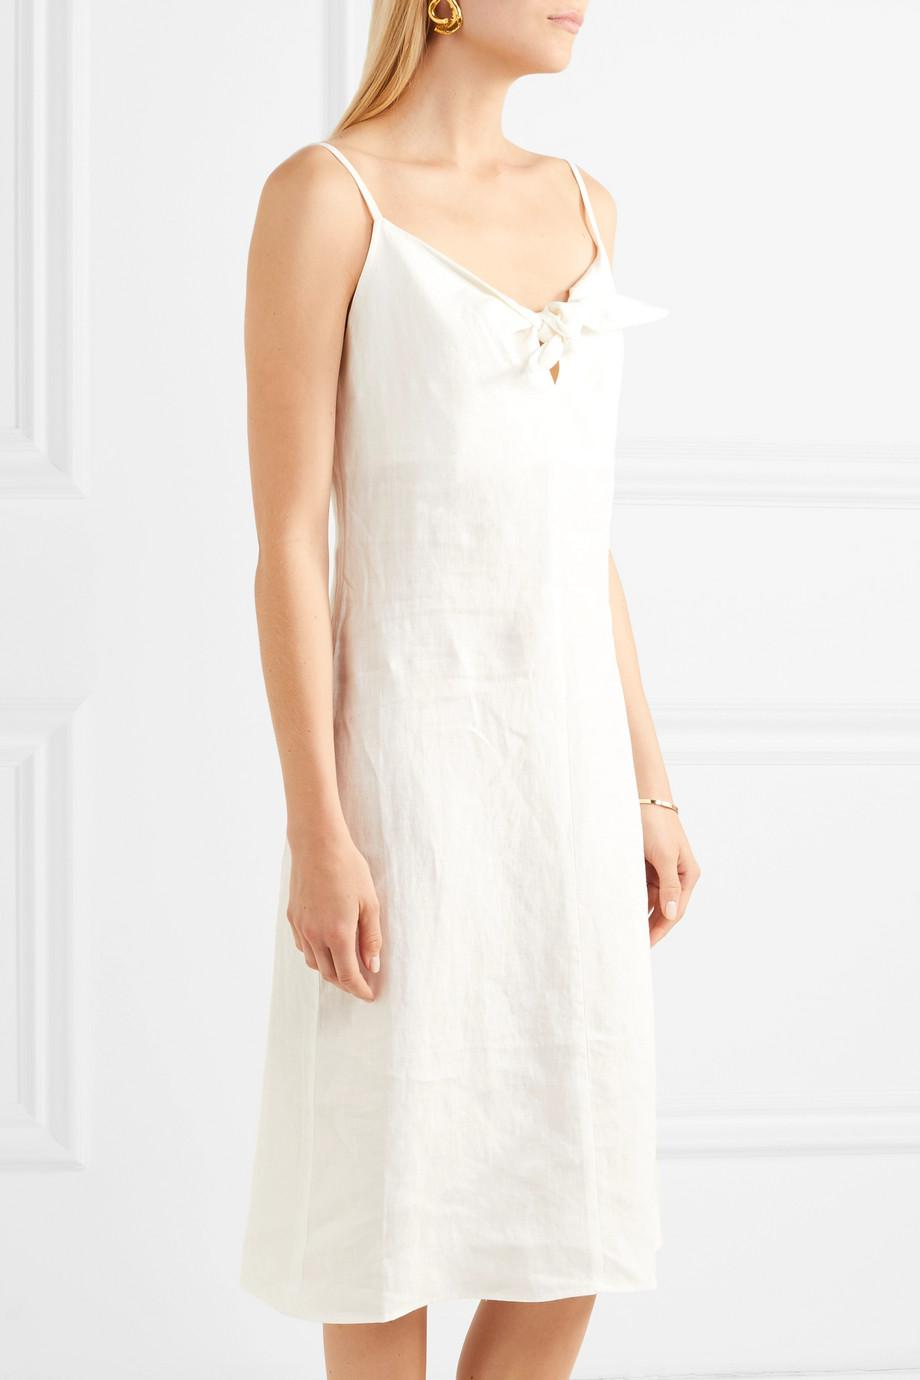 Oriska Tie-front Linen Midi Dress - Cream Simon Miller